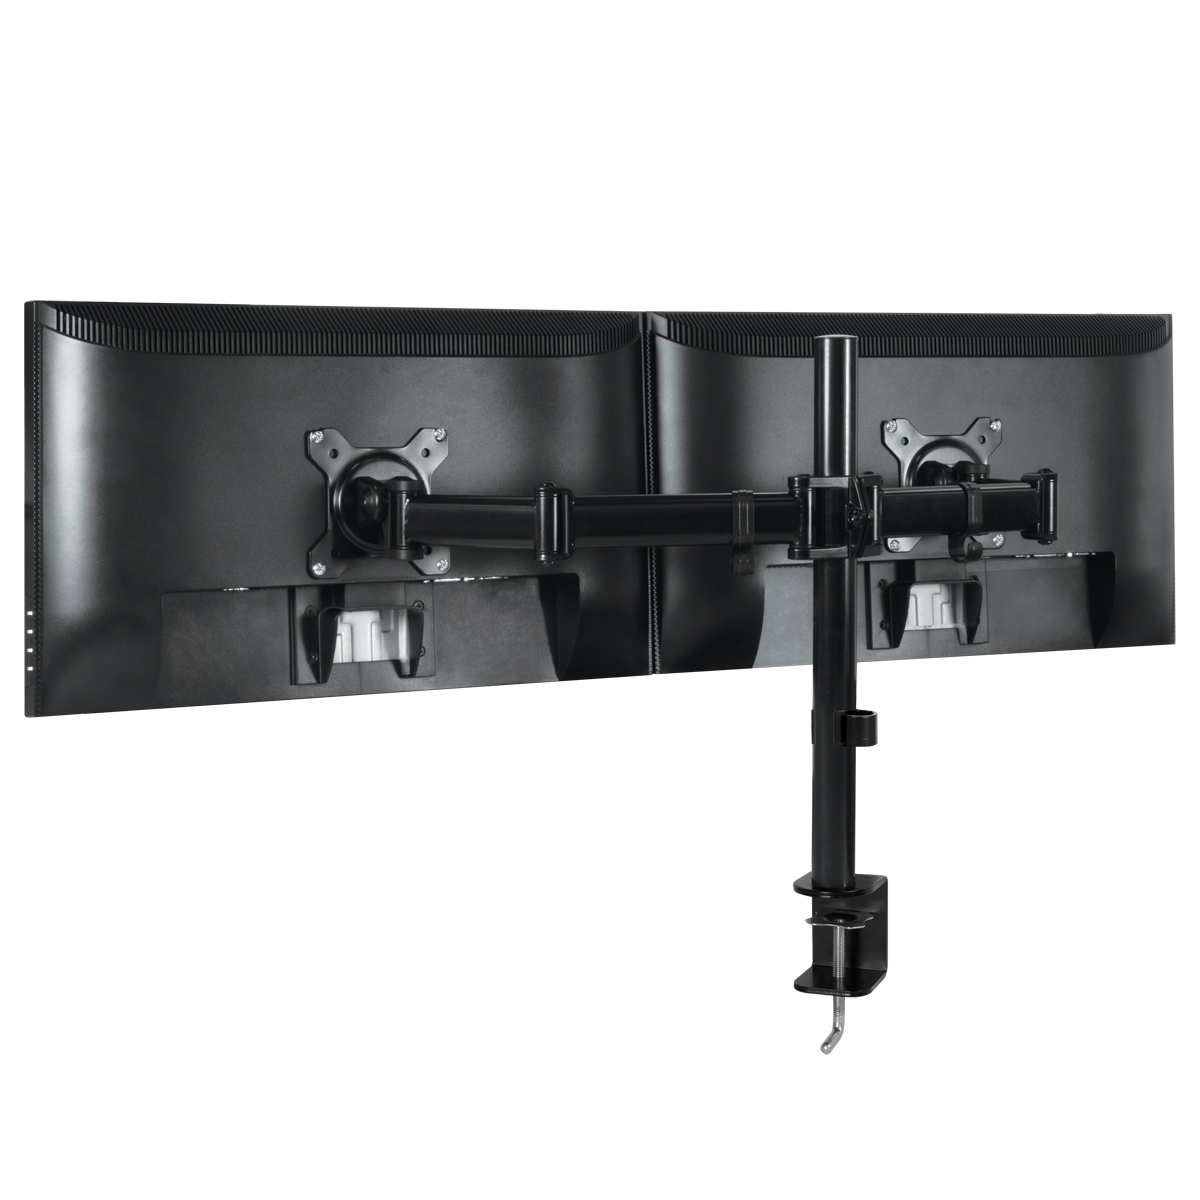 "Desk Mount Dual Monitor Arm Z2 Basic Έως 32"" & Ultra Monitor Έως 25"" Έως 16kg image"